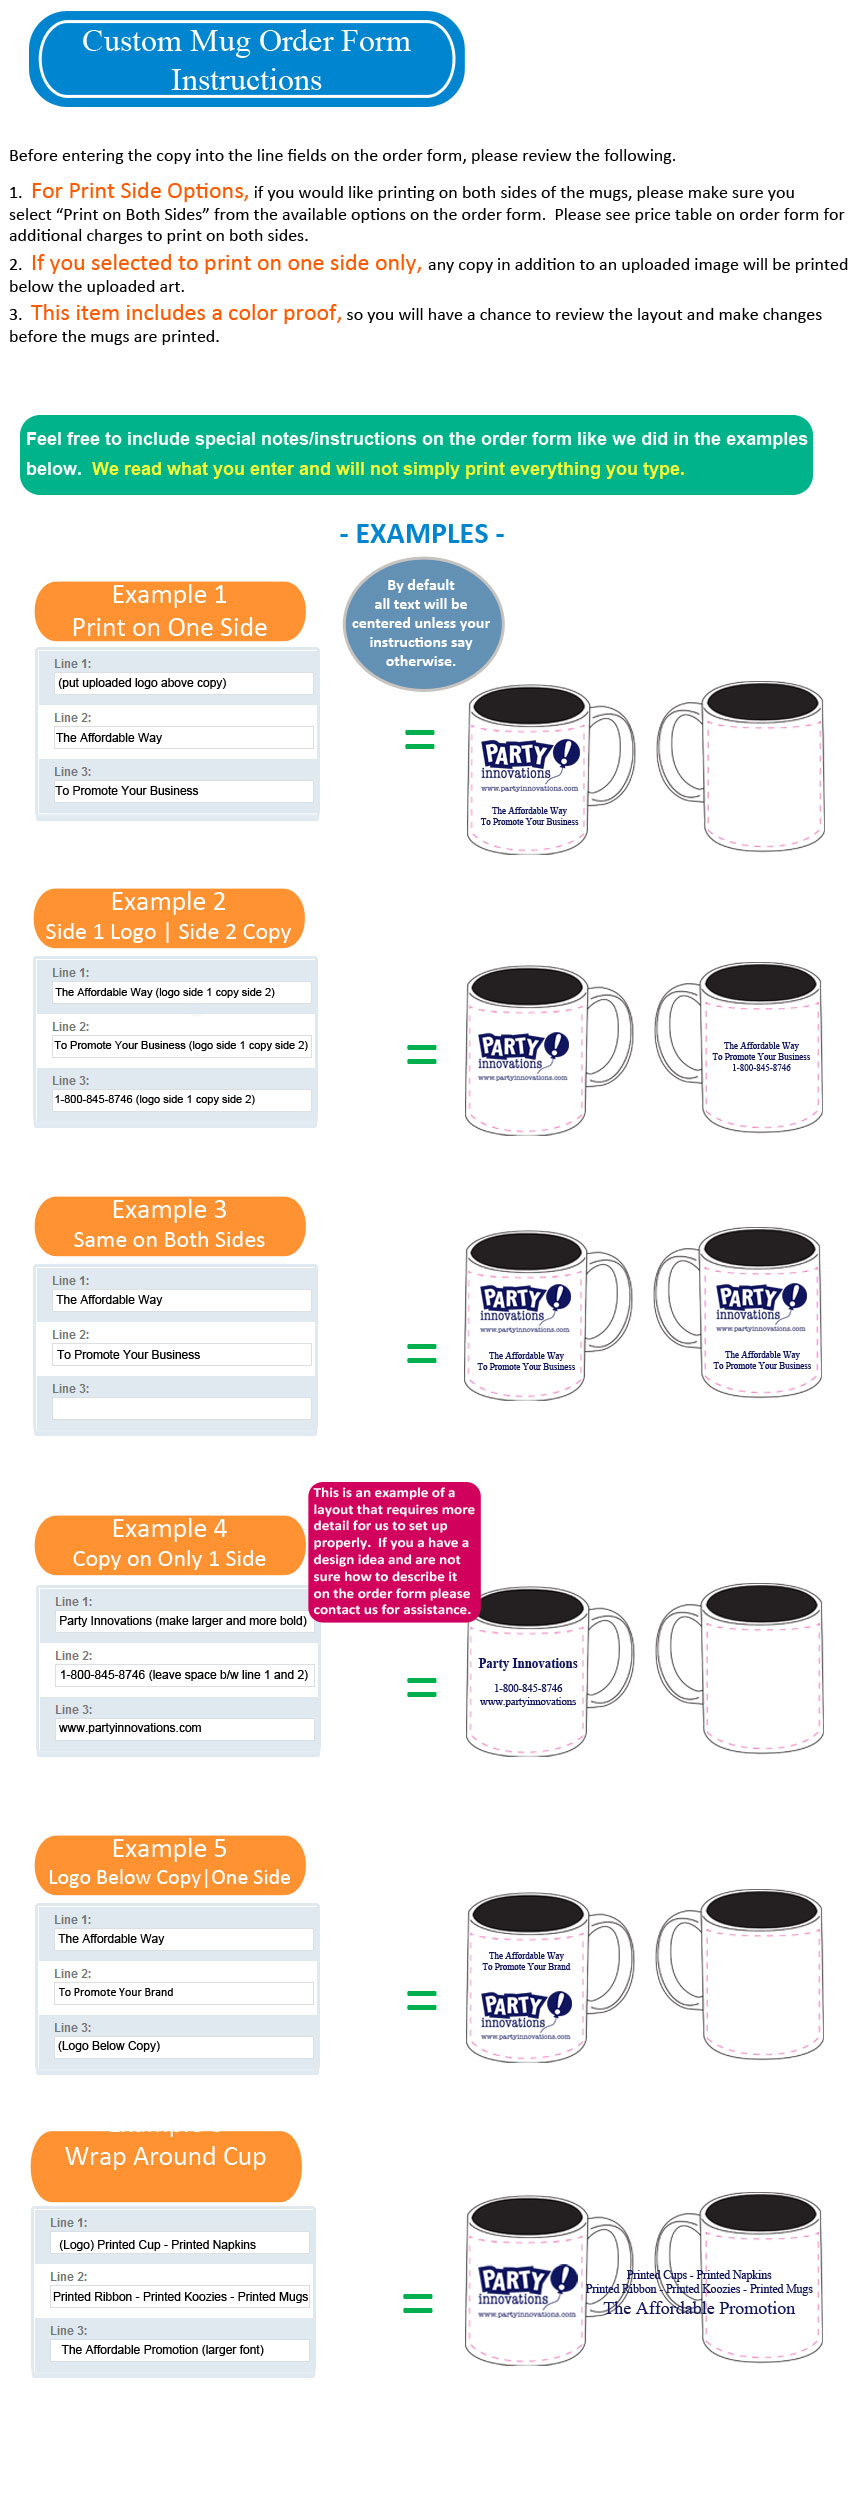 Order Form Instructions For Printed Ceramic Mugs